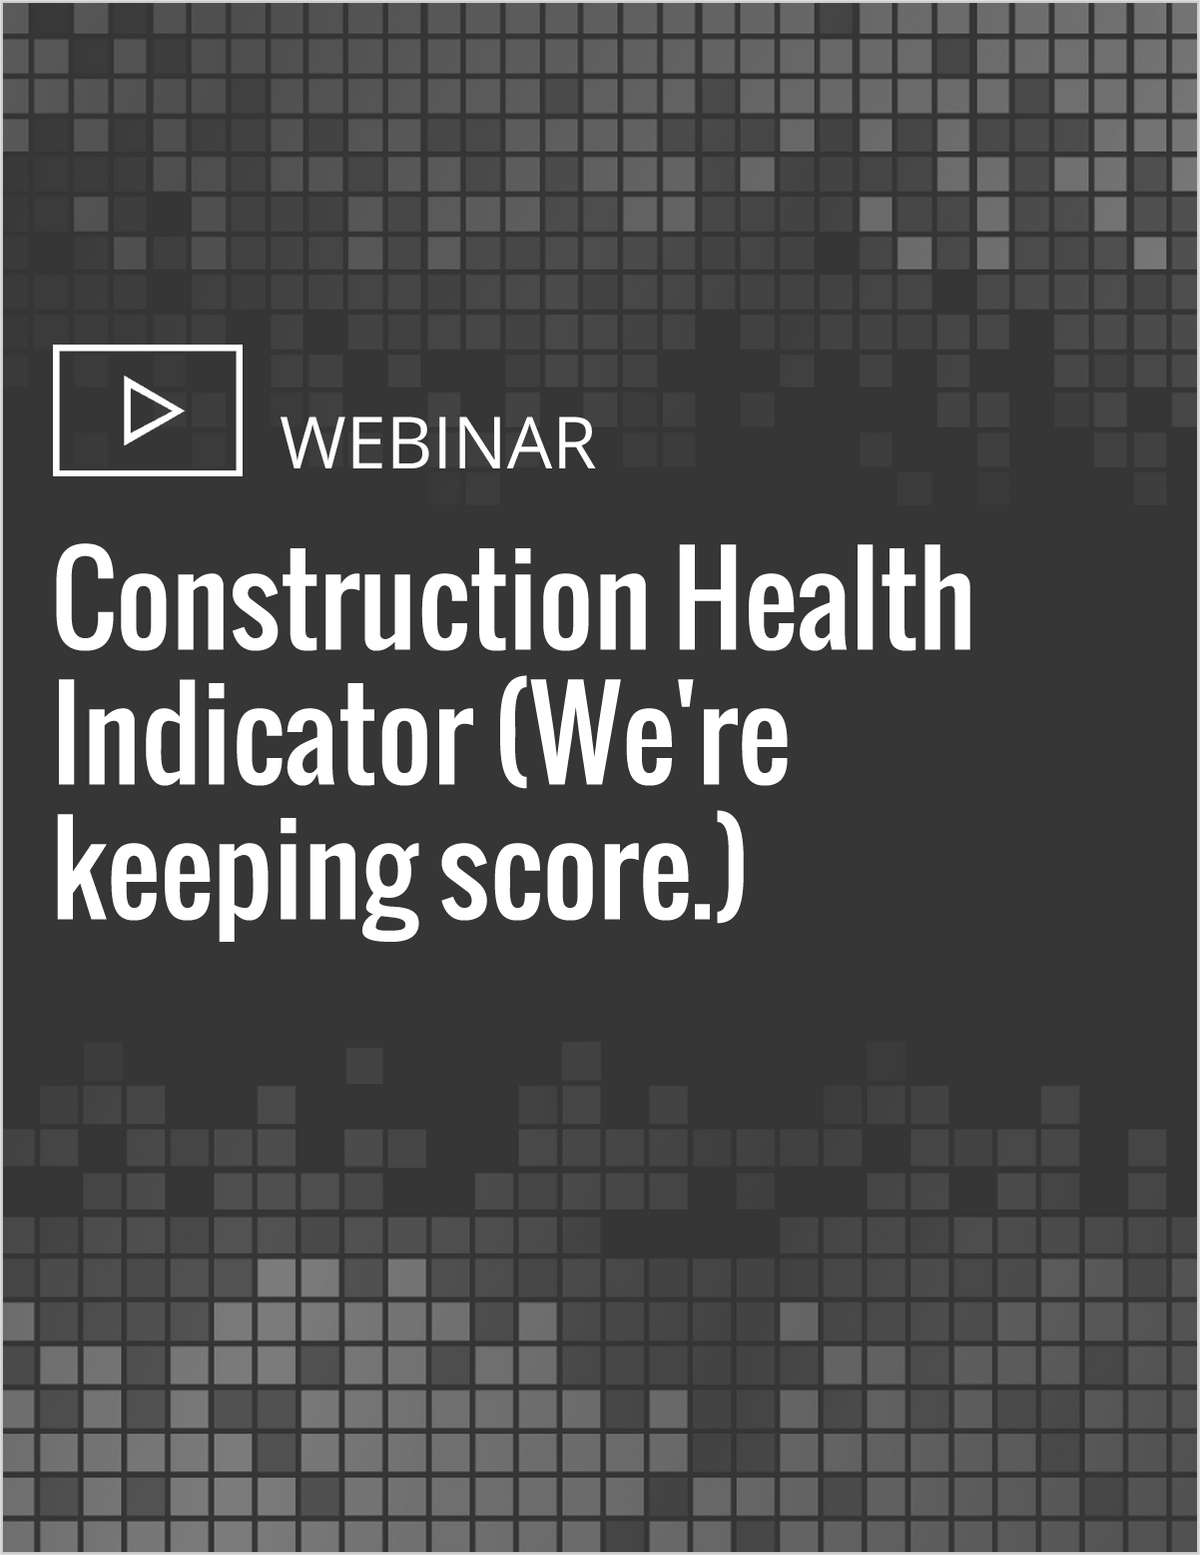 Construction Health Indicator (We're keeping score.)